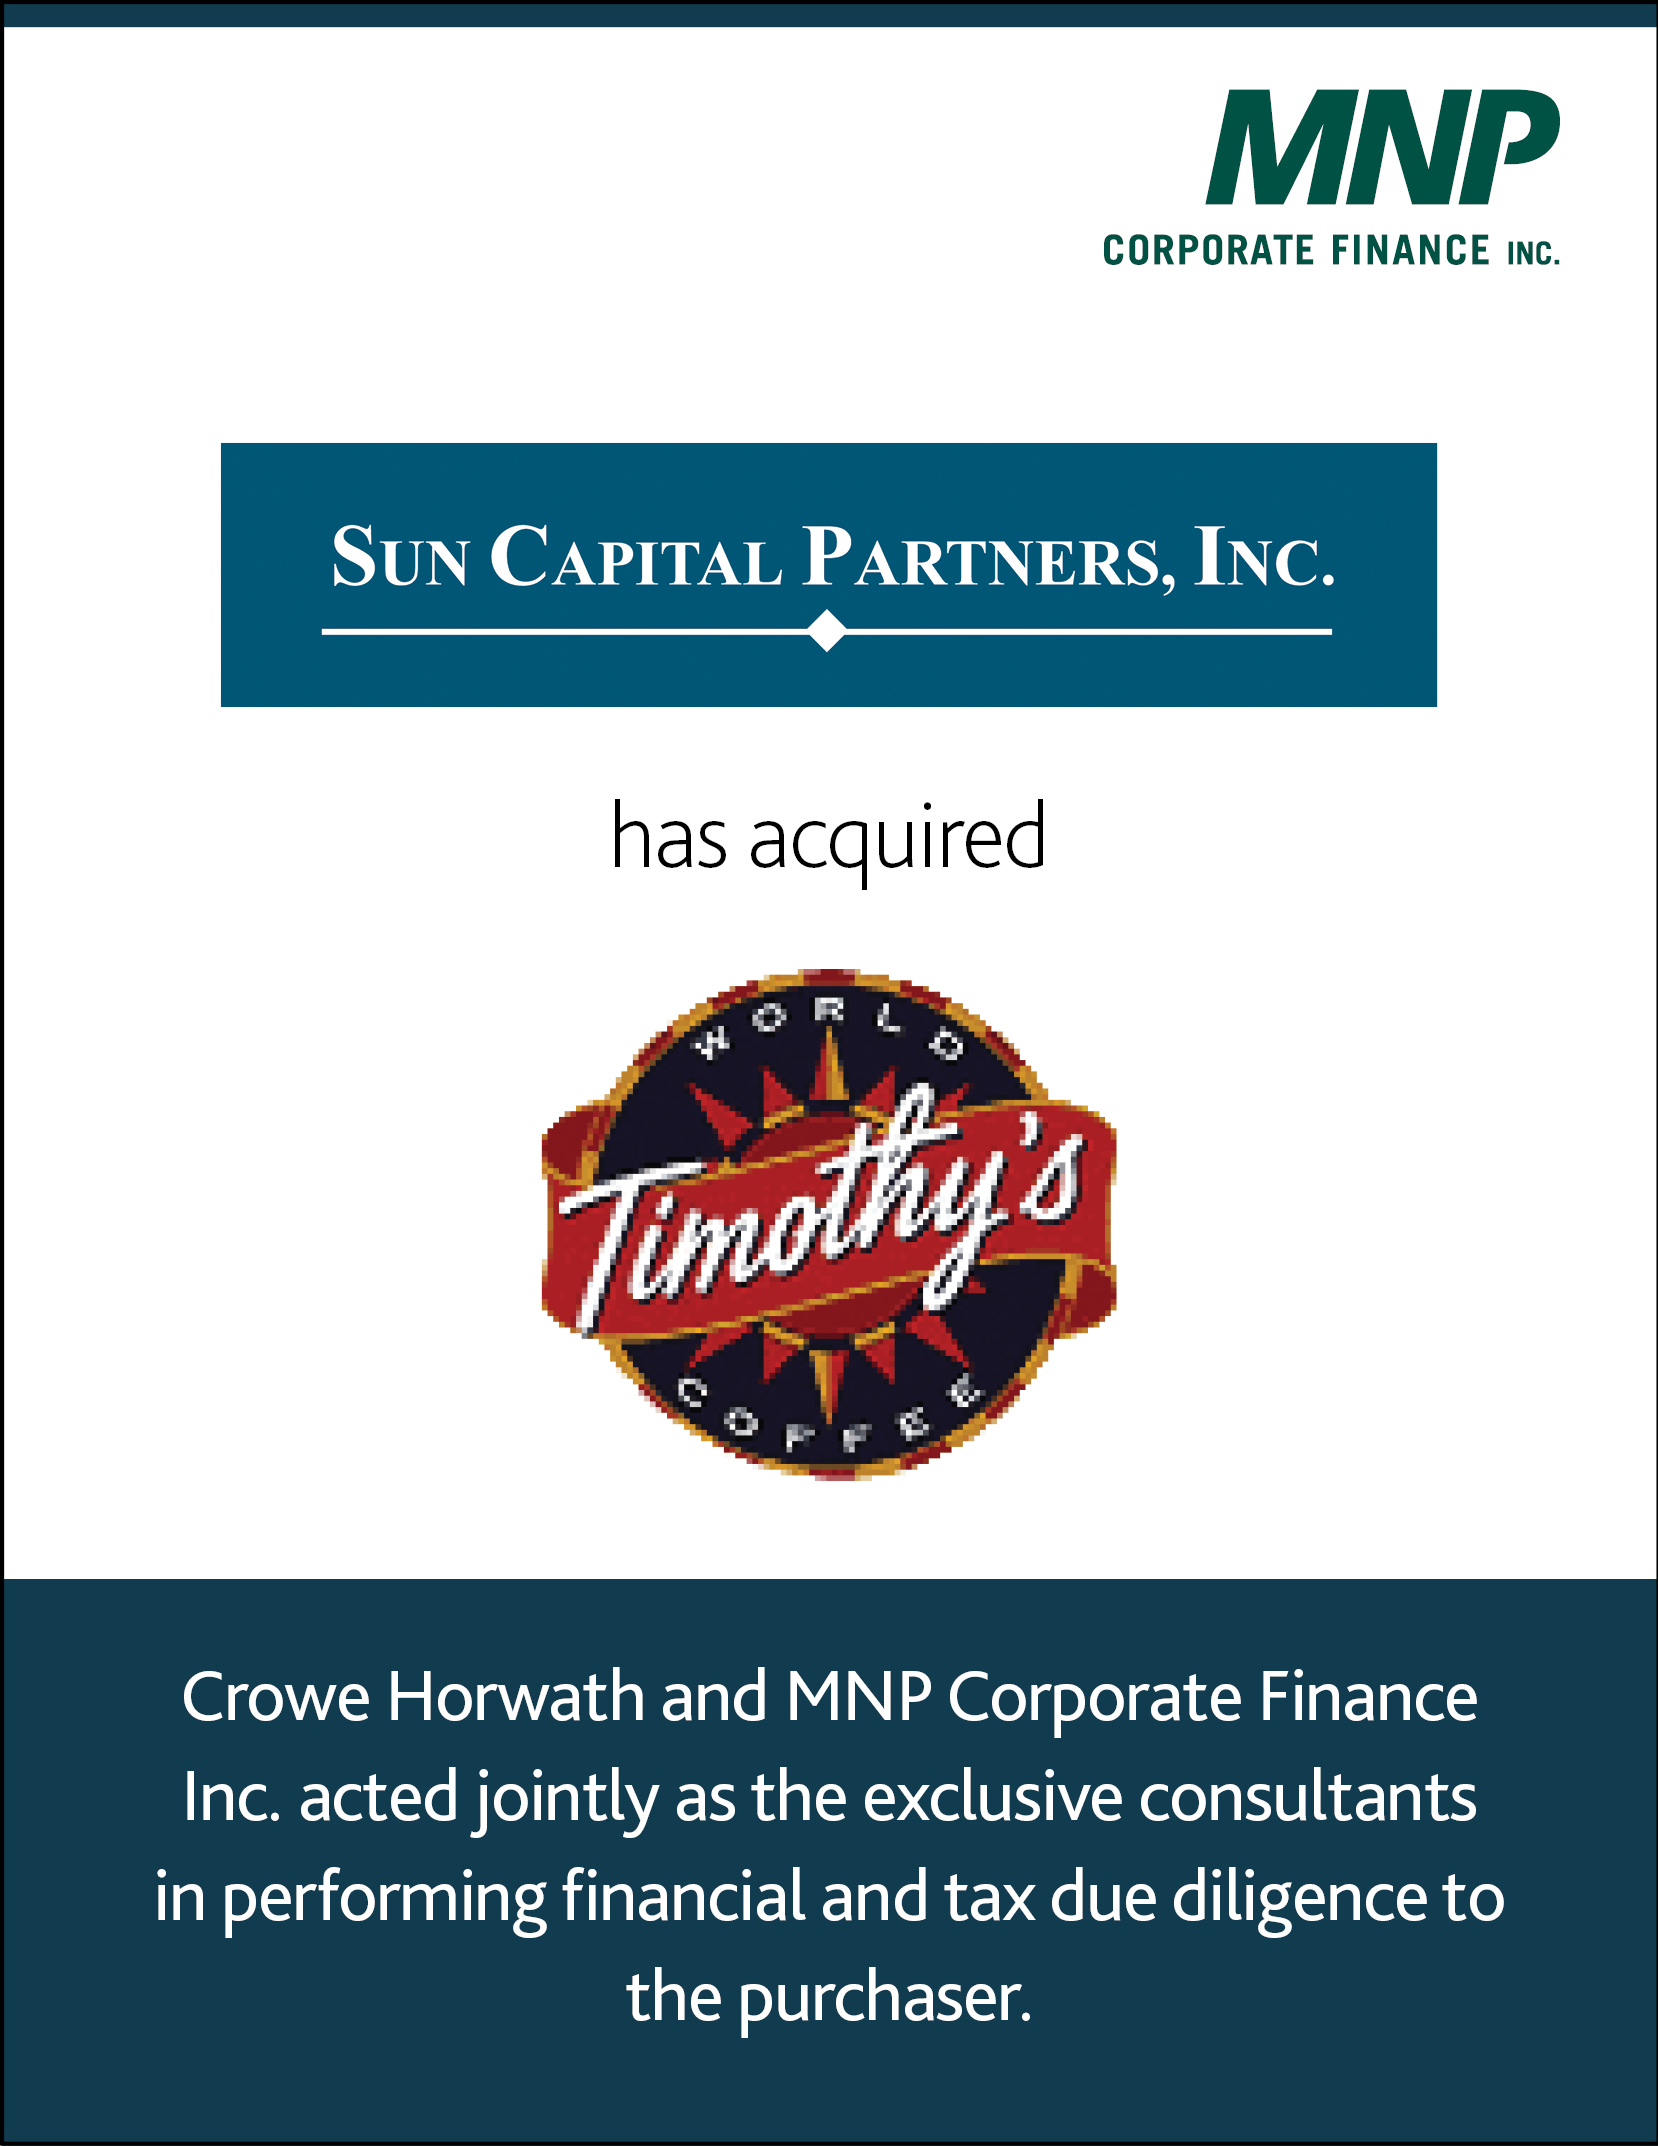 Sun Capital Partners Inc. has acquired Timothy's World Coffee. Crowe Horwath and MNp Corporate Finance Inc. acted jointly as the exclusive consultants in performing financial and tax due diligence to the purchaser